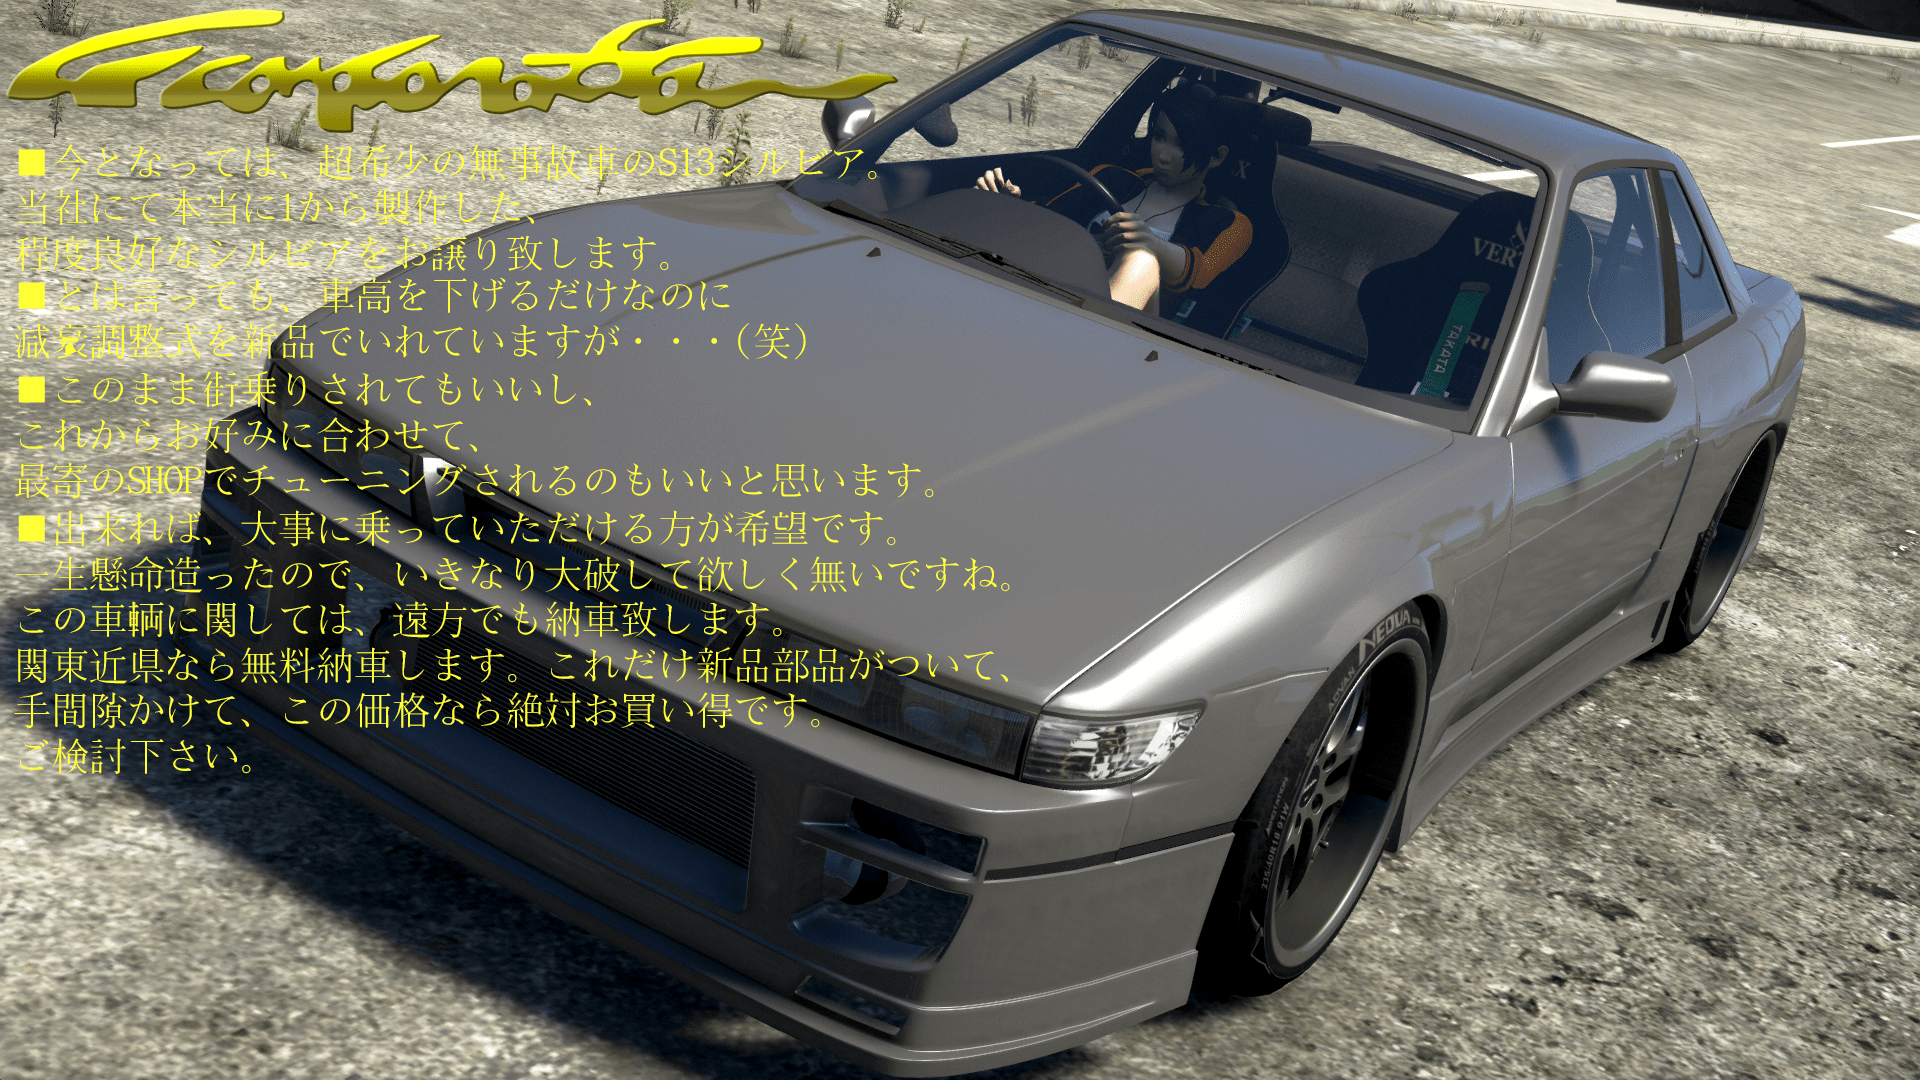 1989-1992 Nissan Silvia S13 [Add-On / 250+ Tuning / RHD